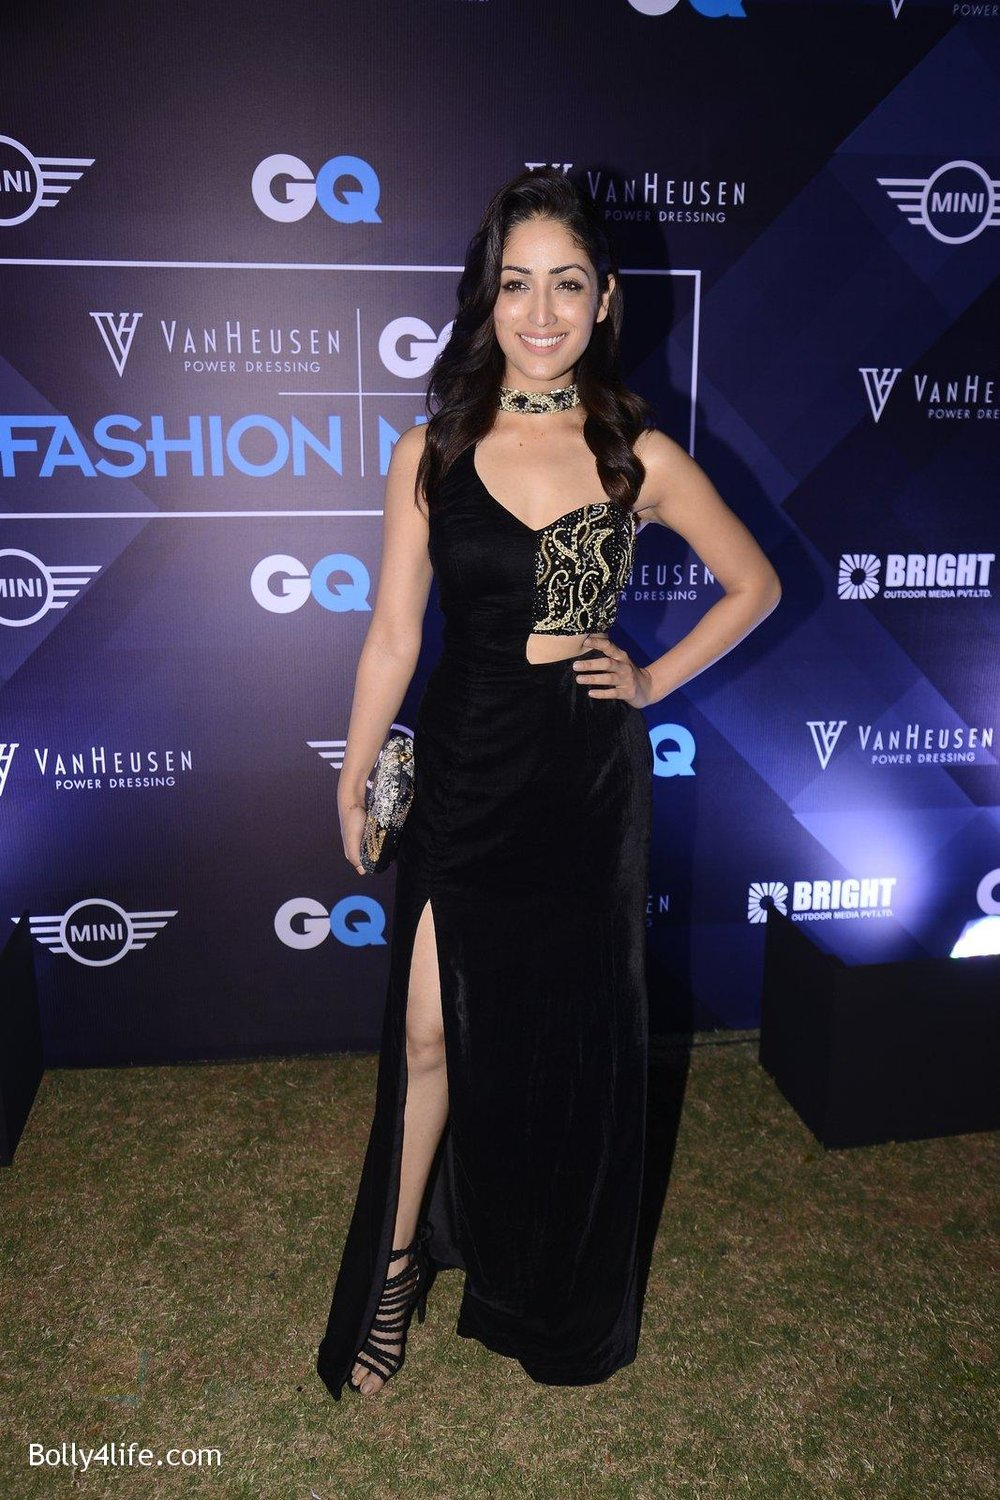 hpse_fullsize_34724_2662011640_Yami-Gautam-at-GQ-fashion-nights-on-3rd-Dec-2016-241_58450fdb1659c.jpg